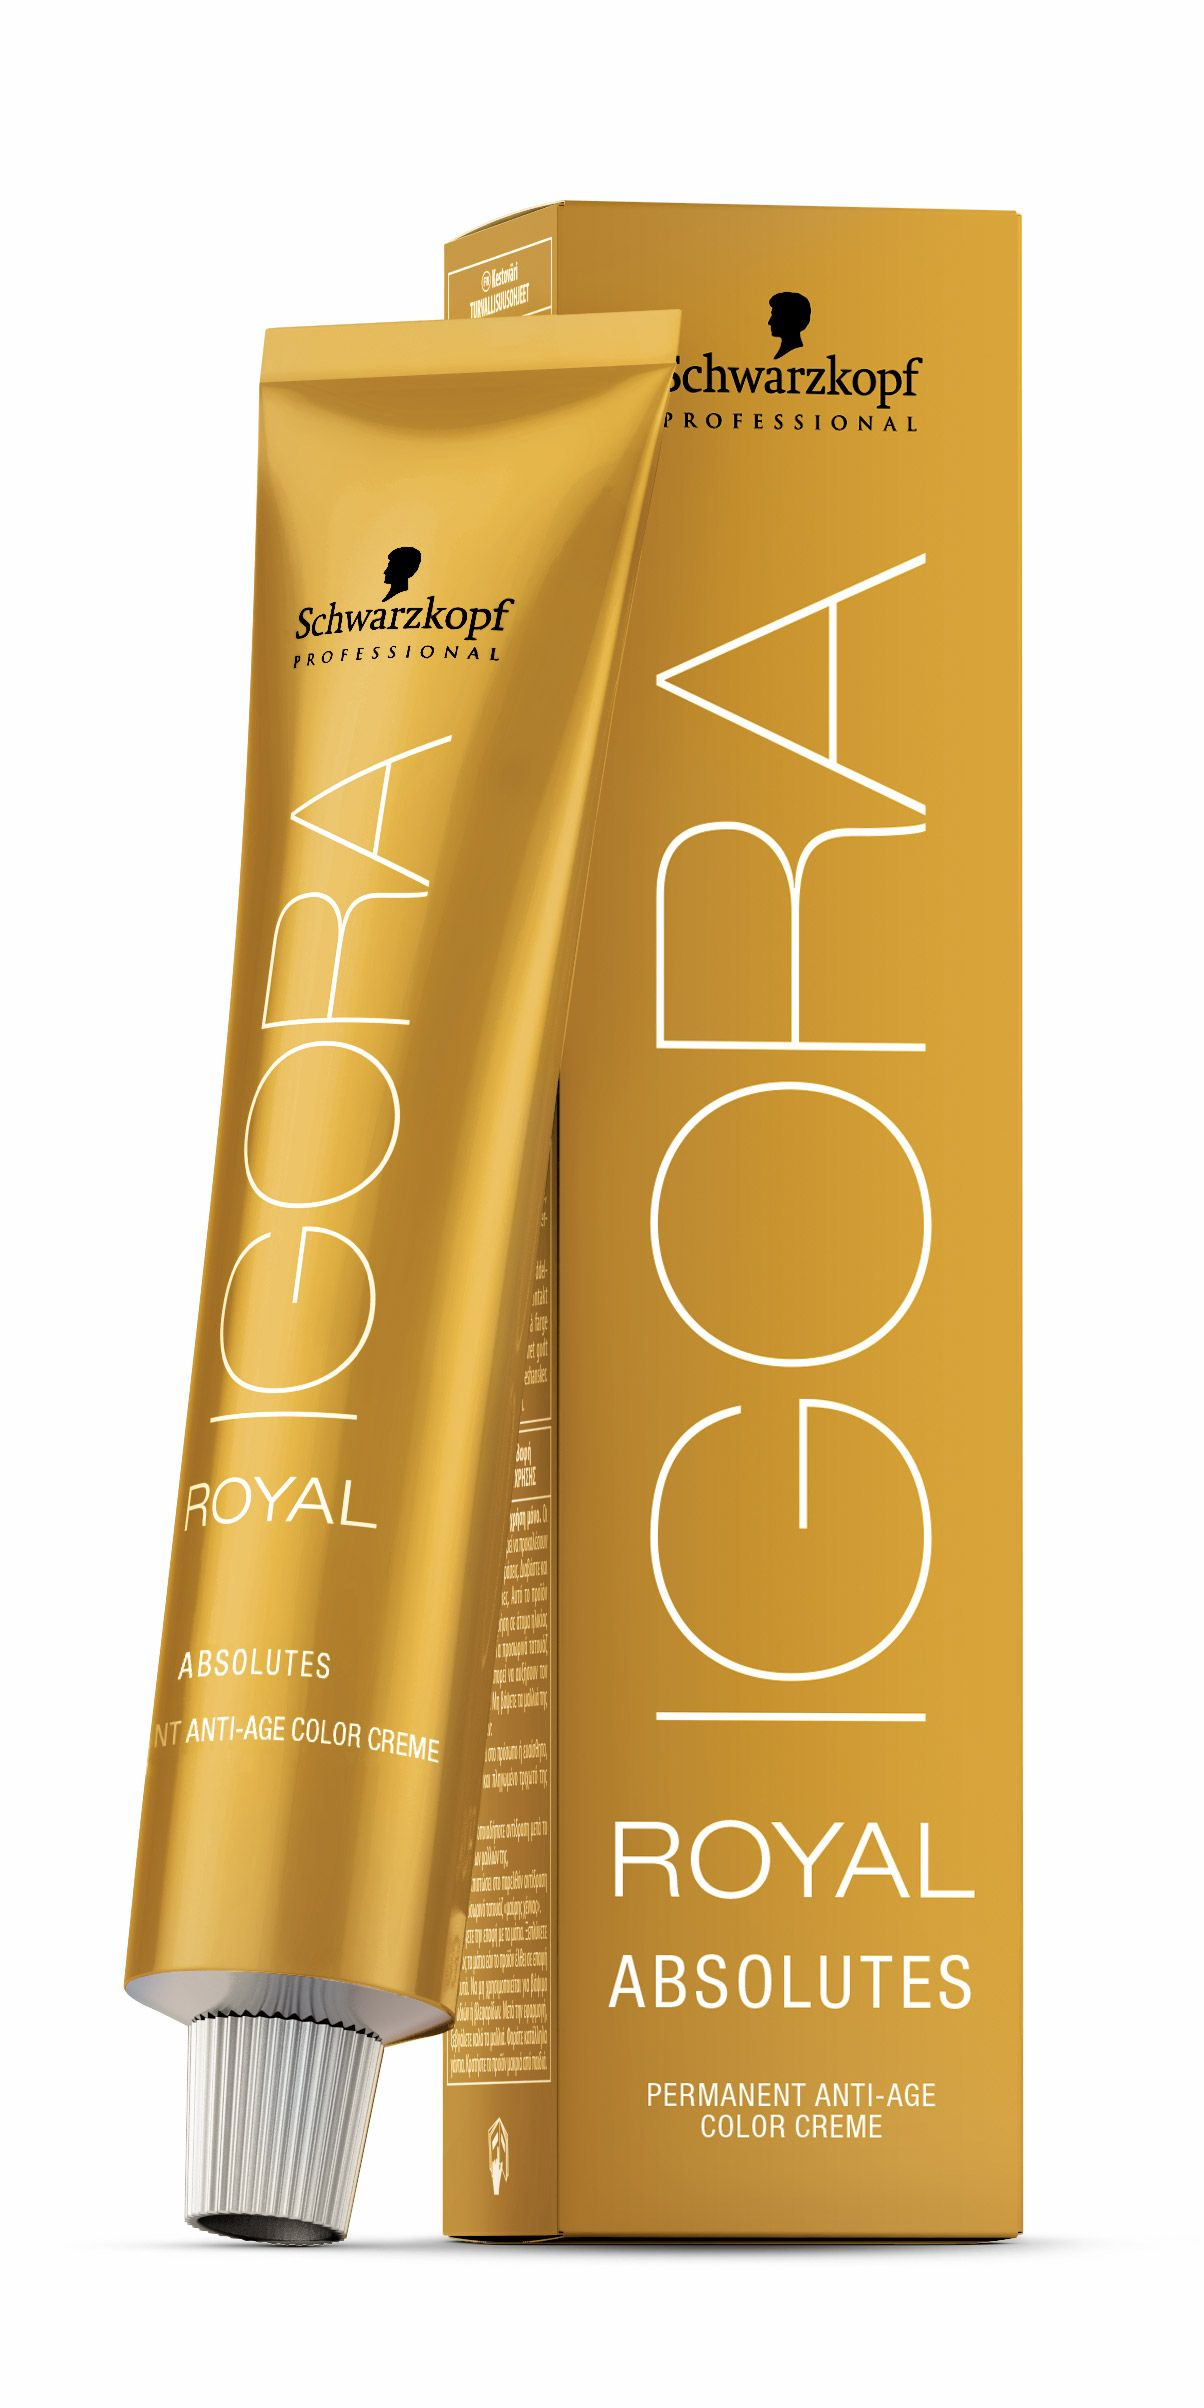 Schwarzkopf professional igora absolutes permanent anti age color schwarzkopf professional igora absolutes permanent anti age color creme 60ml nvjuhfo Image collections